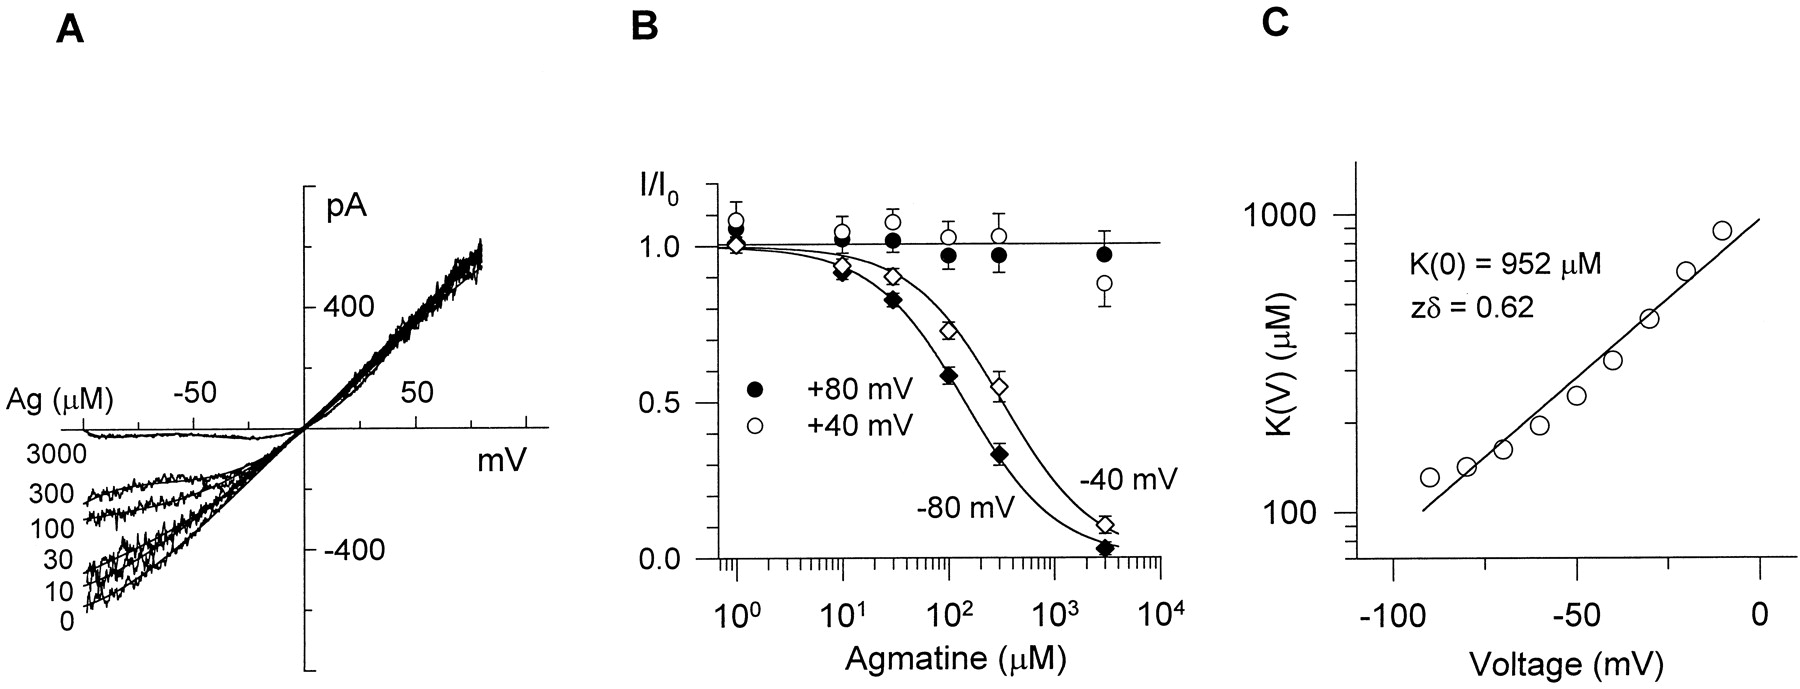 Agmatine Selectively Blocks theN-Methyl-d-Aspartate Subclass of